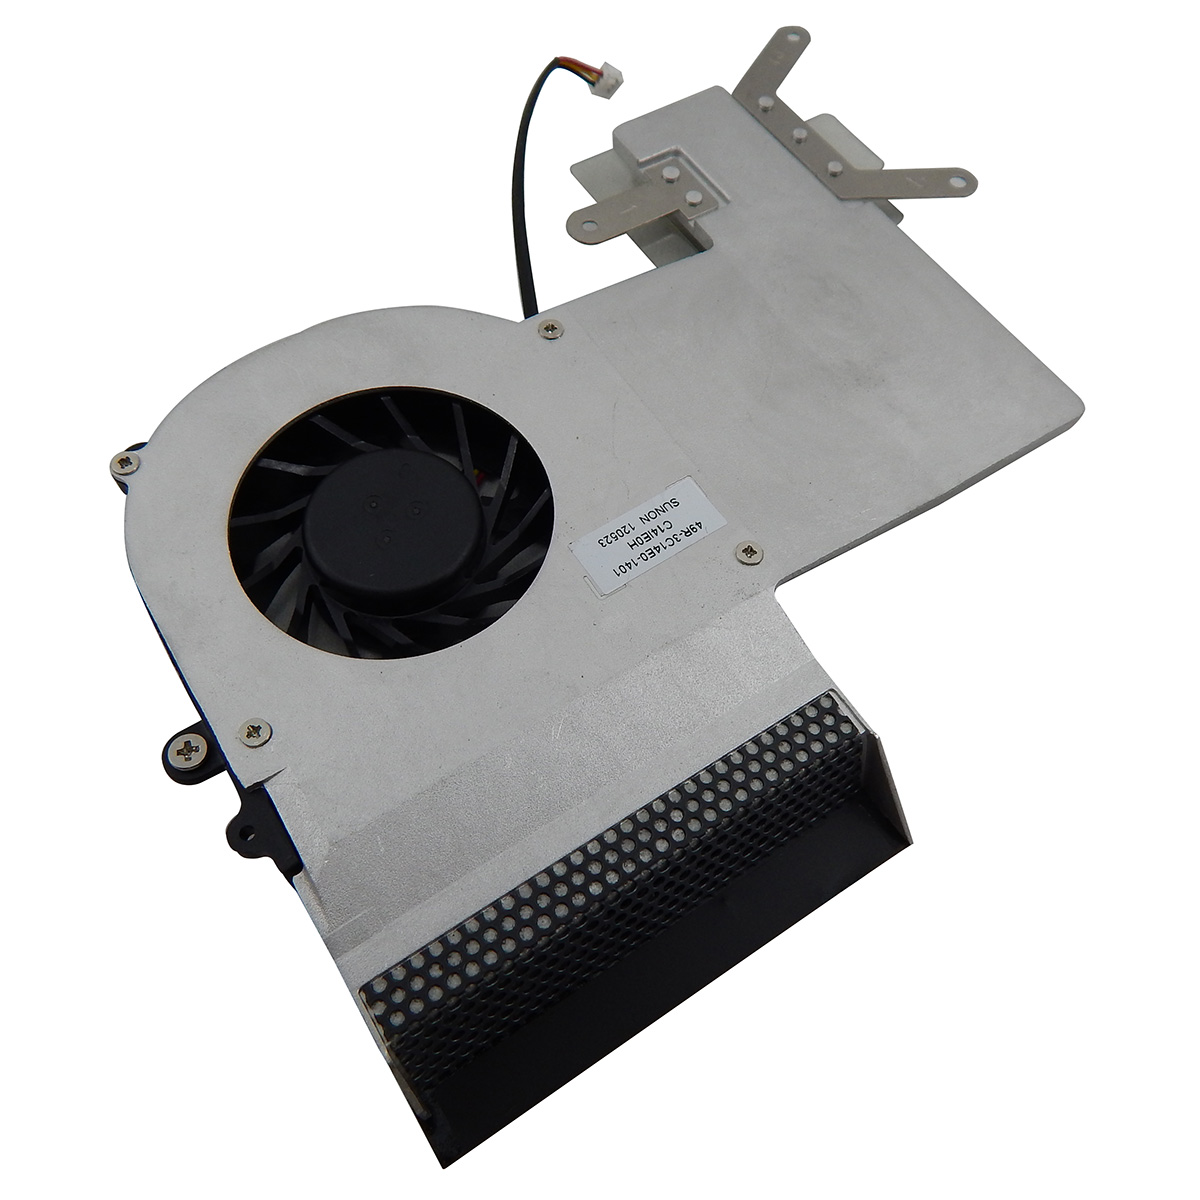 Cooler Fan com Dissipador para Notebook Pn: MF60120V1-C410-G99 / 49R-3C14E0-1401